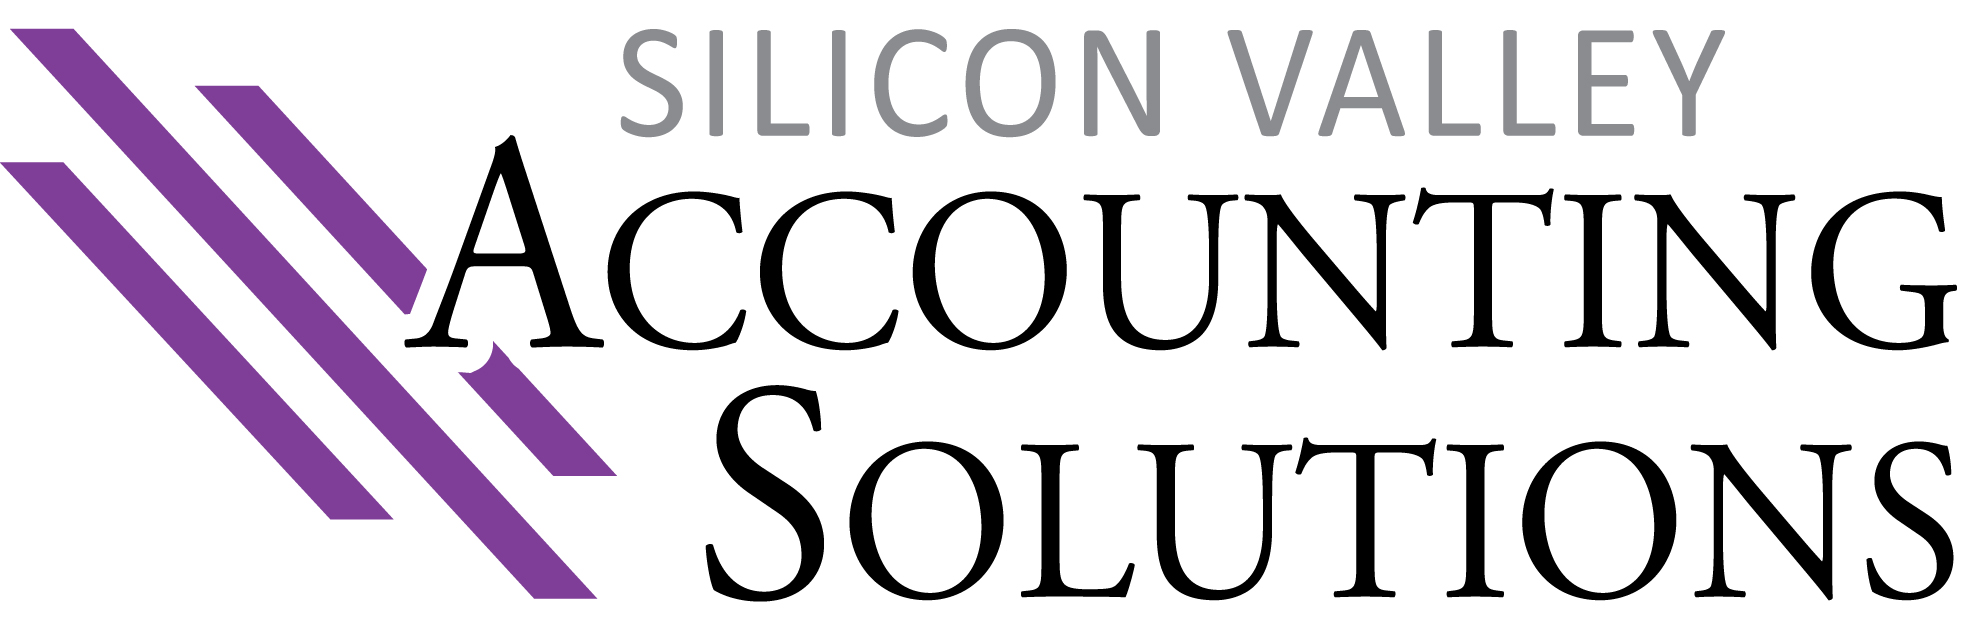 Silicon Valley Accounting Solutions